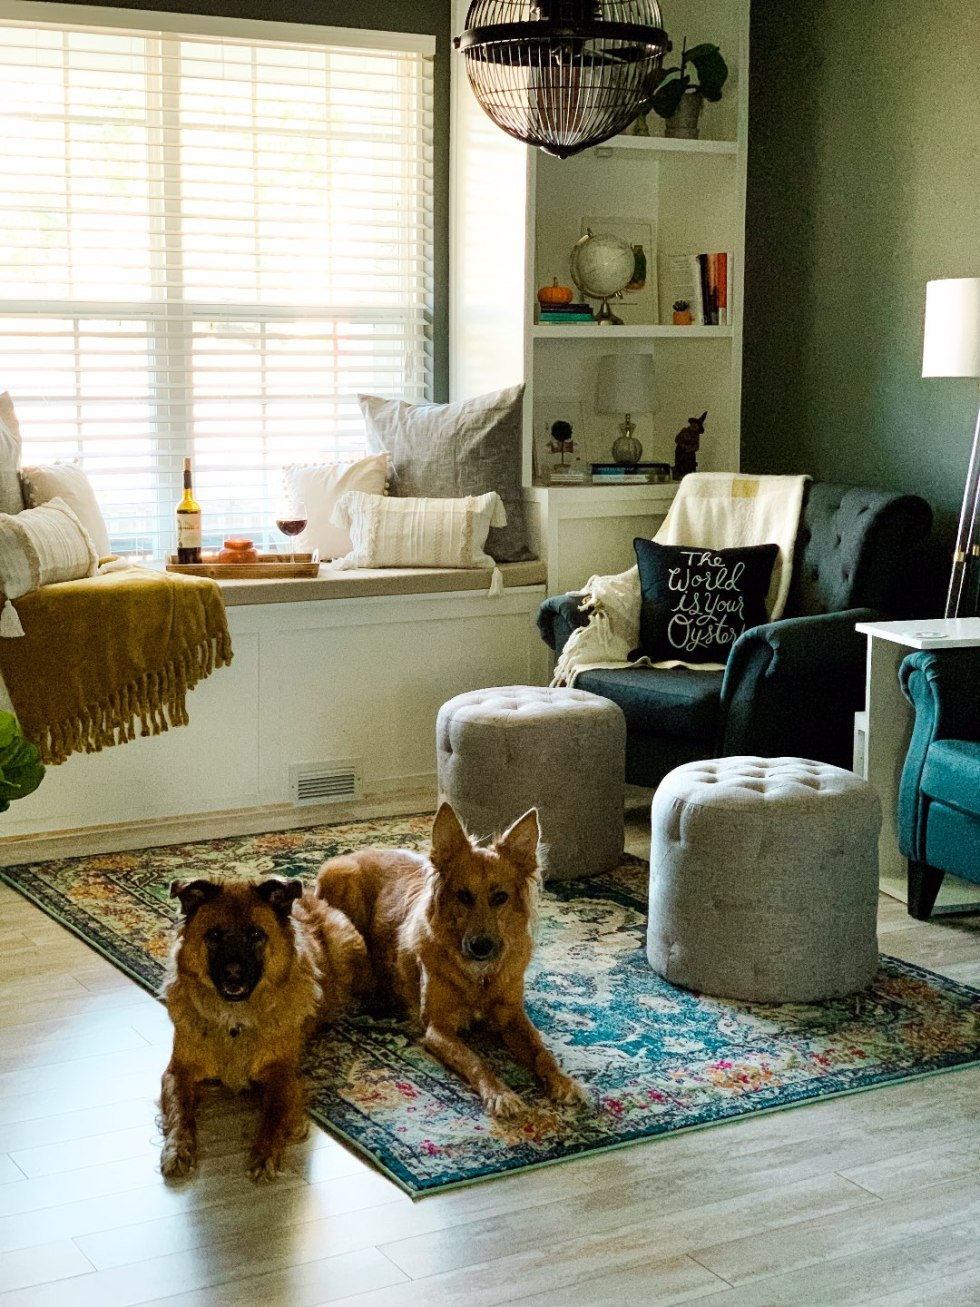 Best Throw Pillows by popular NC life and style blog, I'm Fixin' To: image of two dogs laying on the floor in a sitting room.